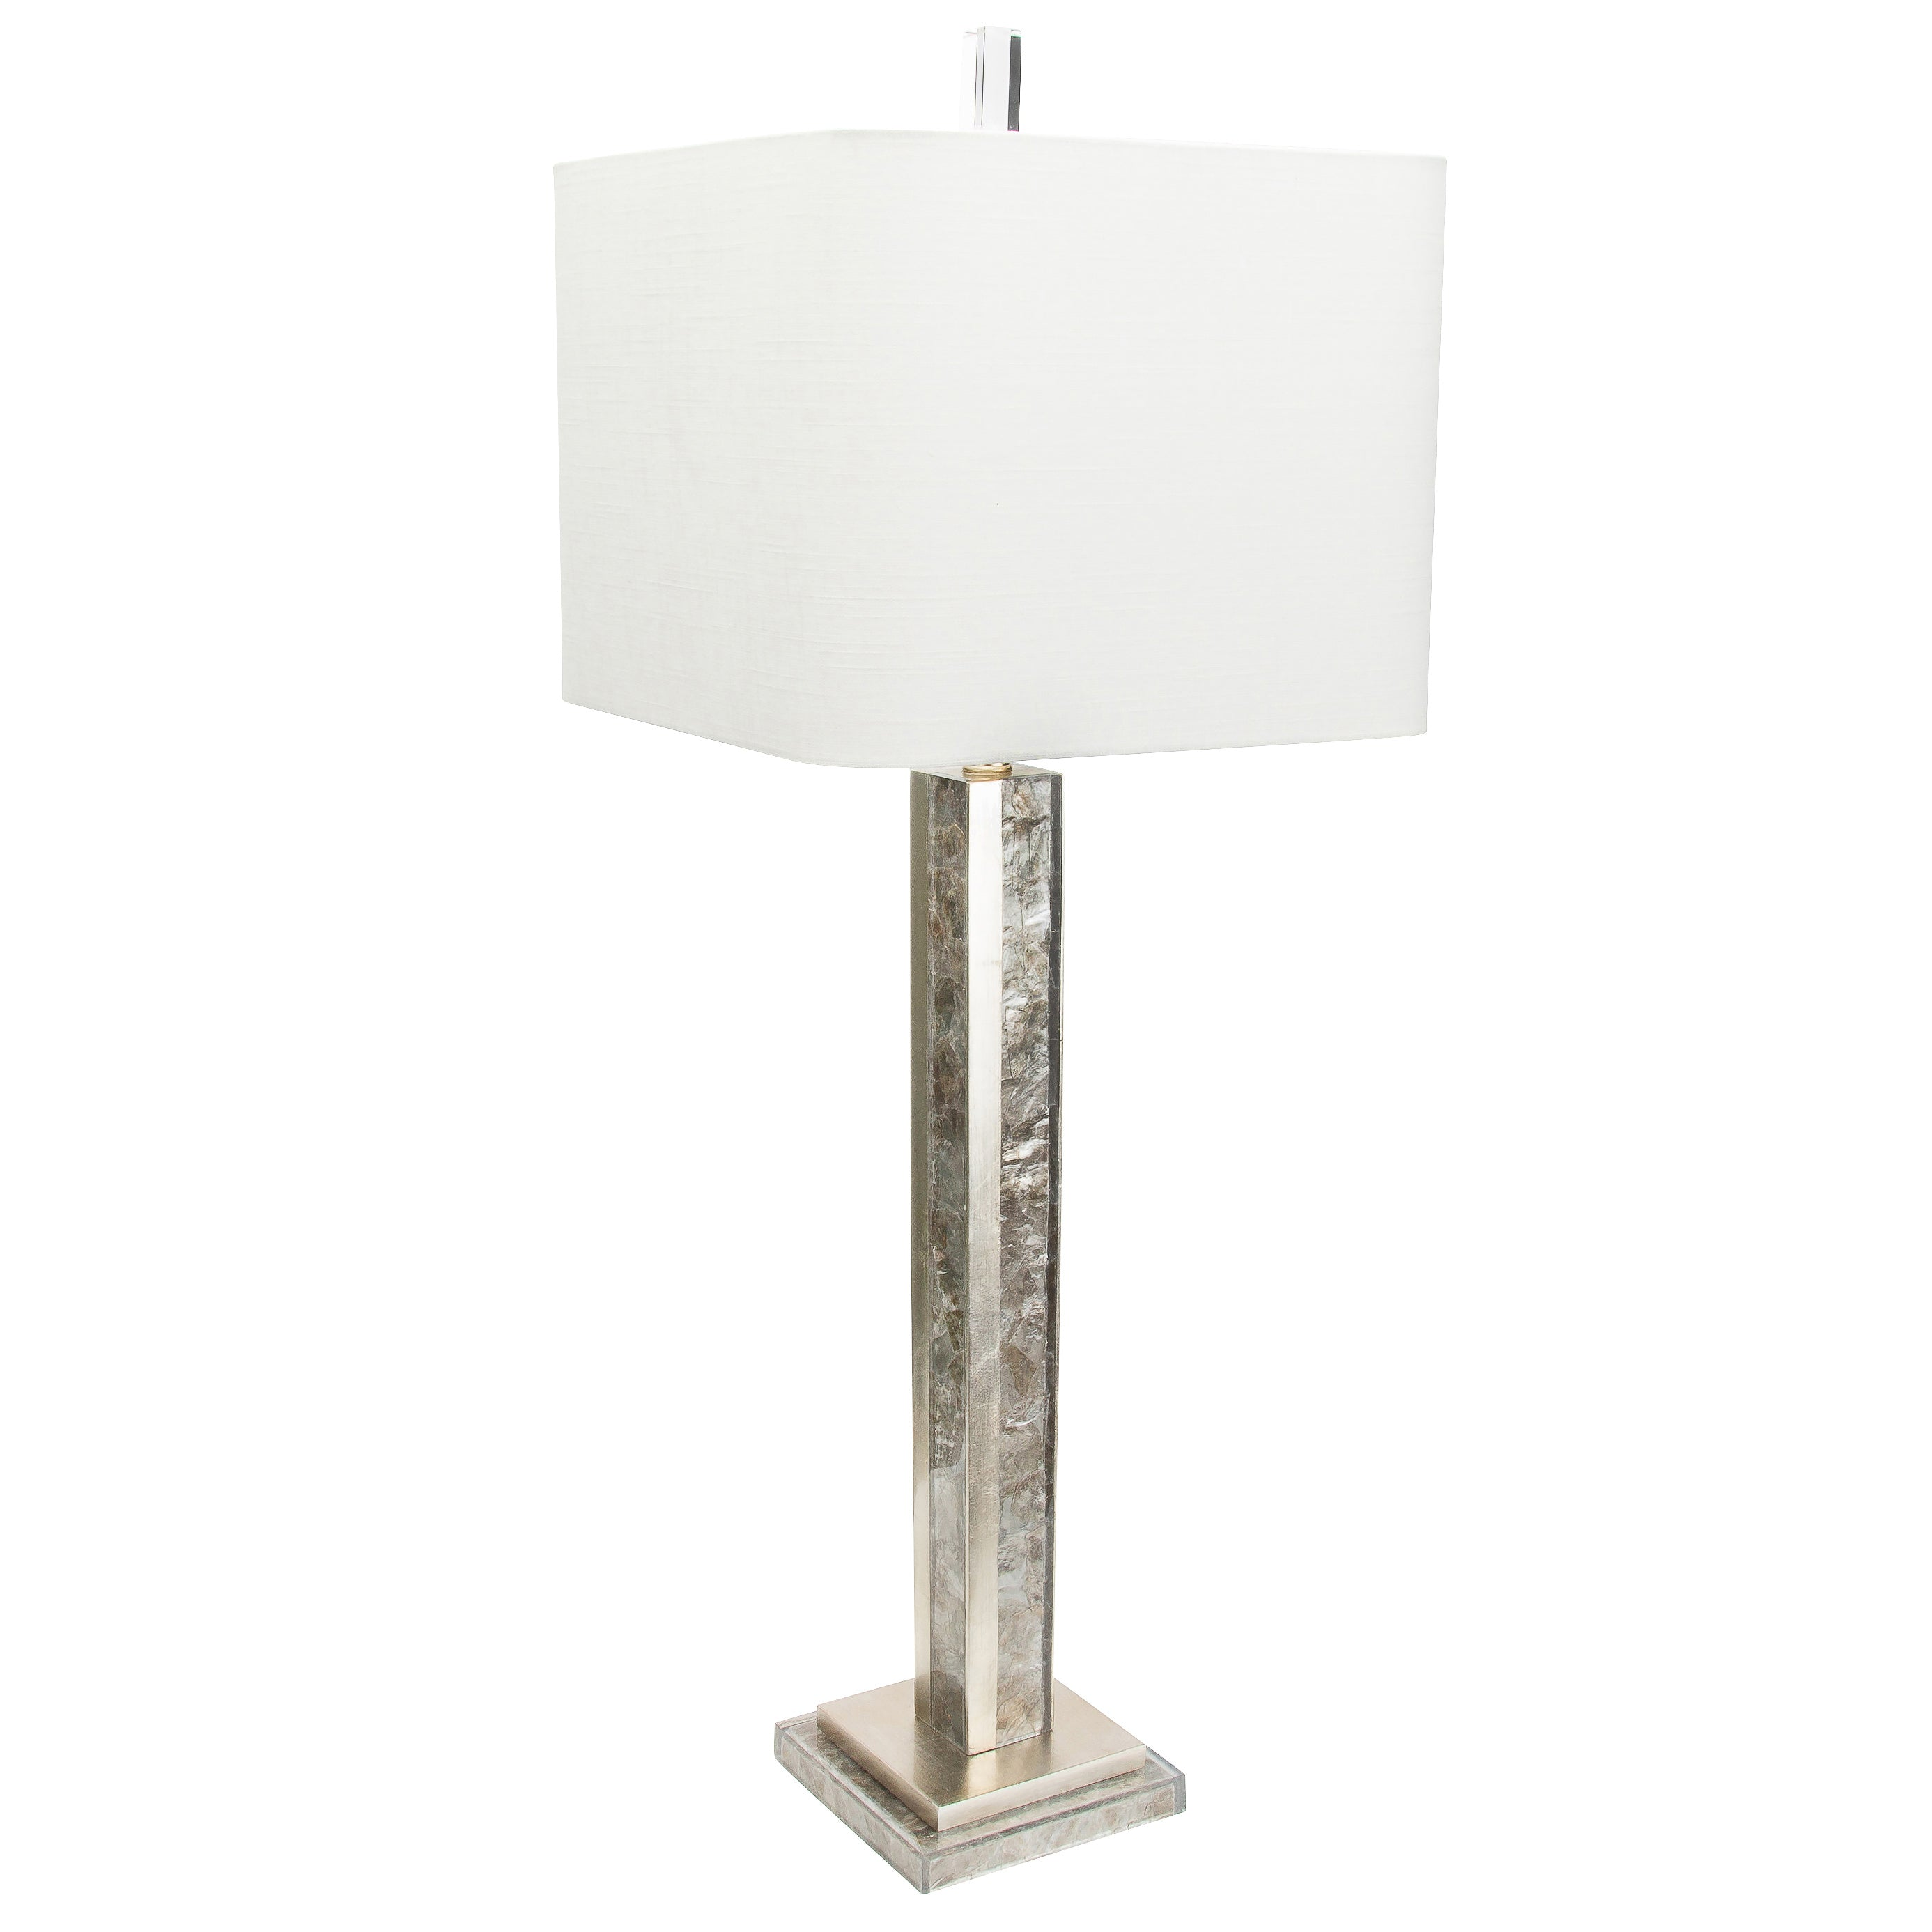 Emerson Buffet Lamp - Couture Lamps